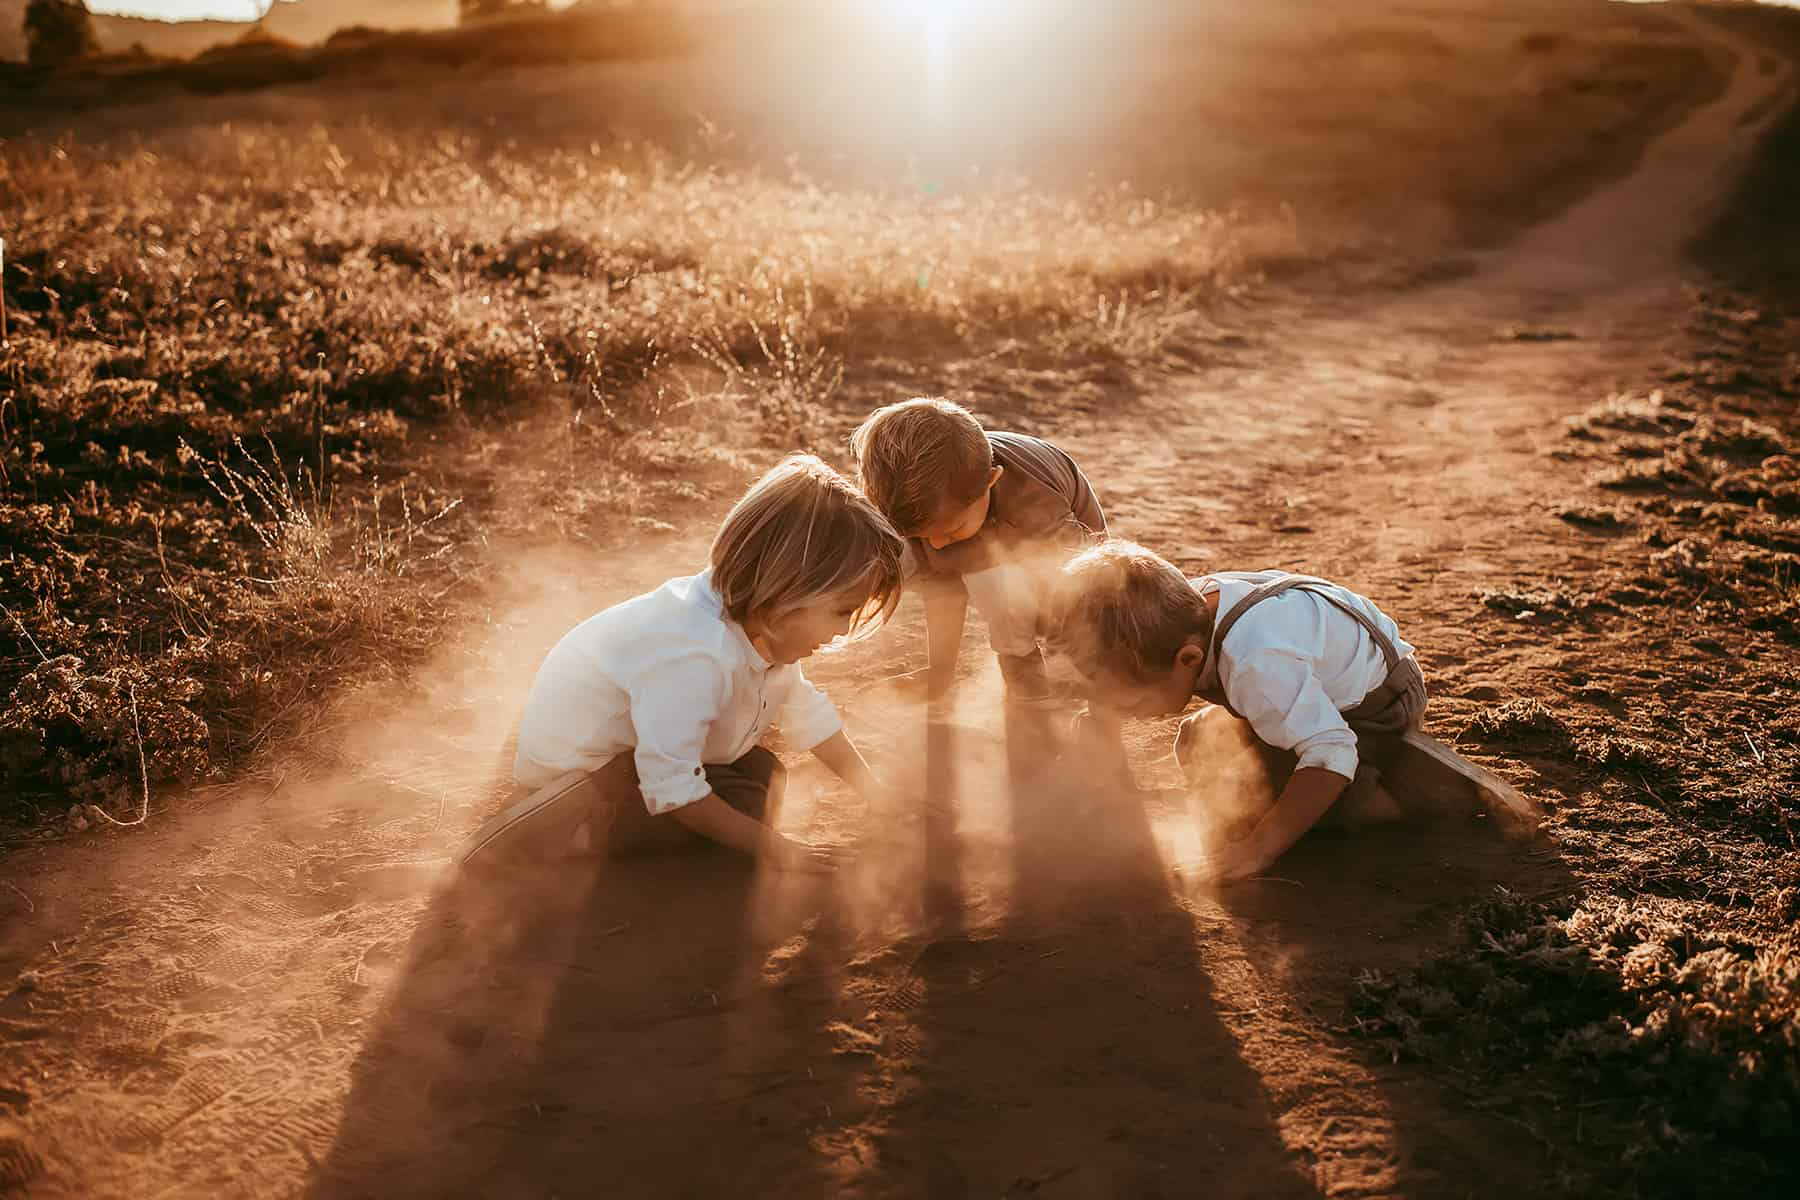 A small group of kids playing on a dirt road while the dust is lit up by the setting sun